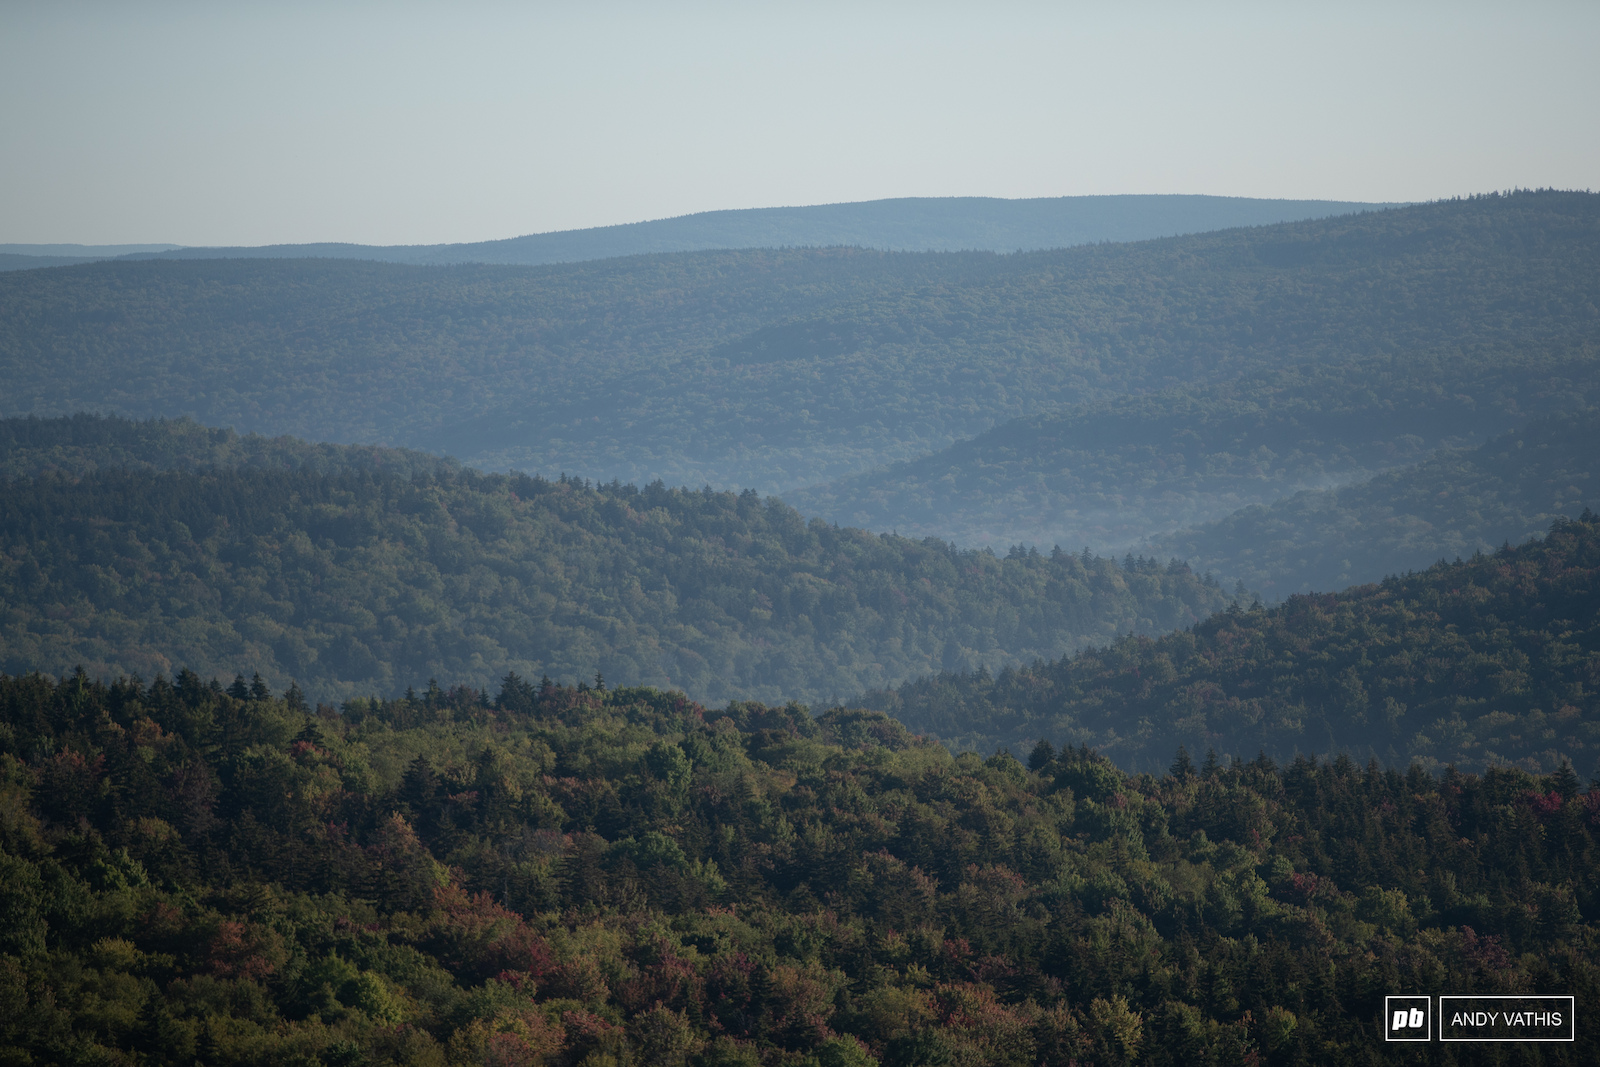 The back side view of Snowshoe and its rolling hills.